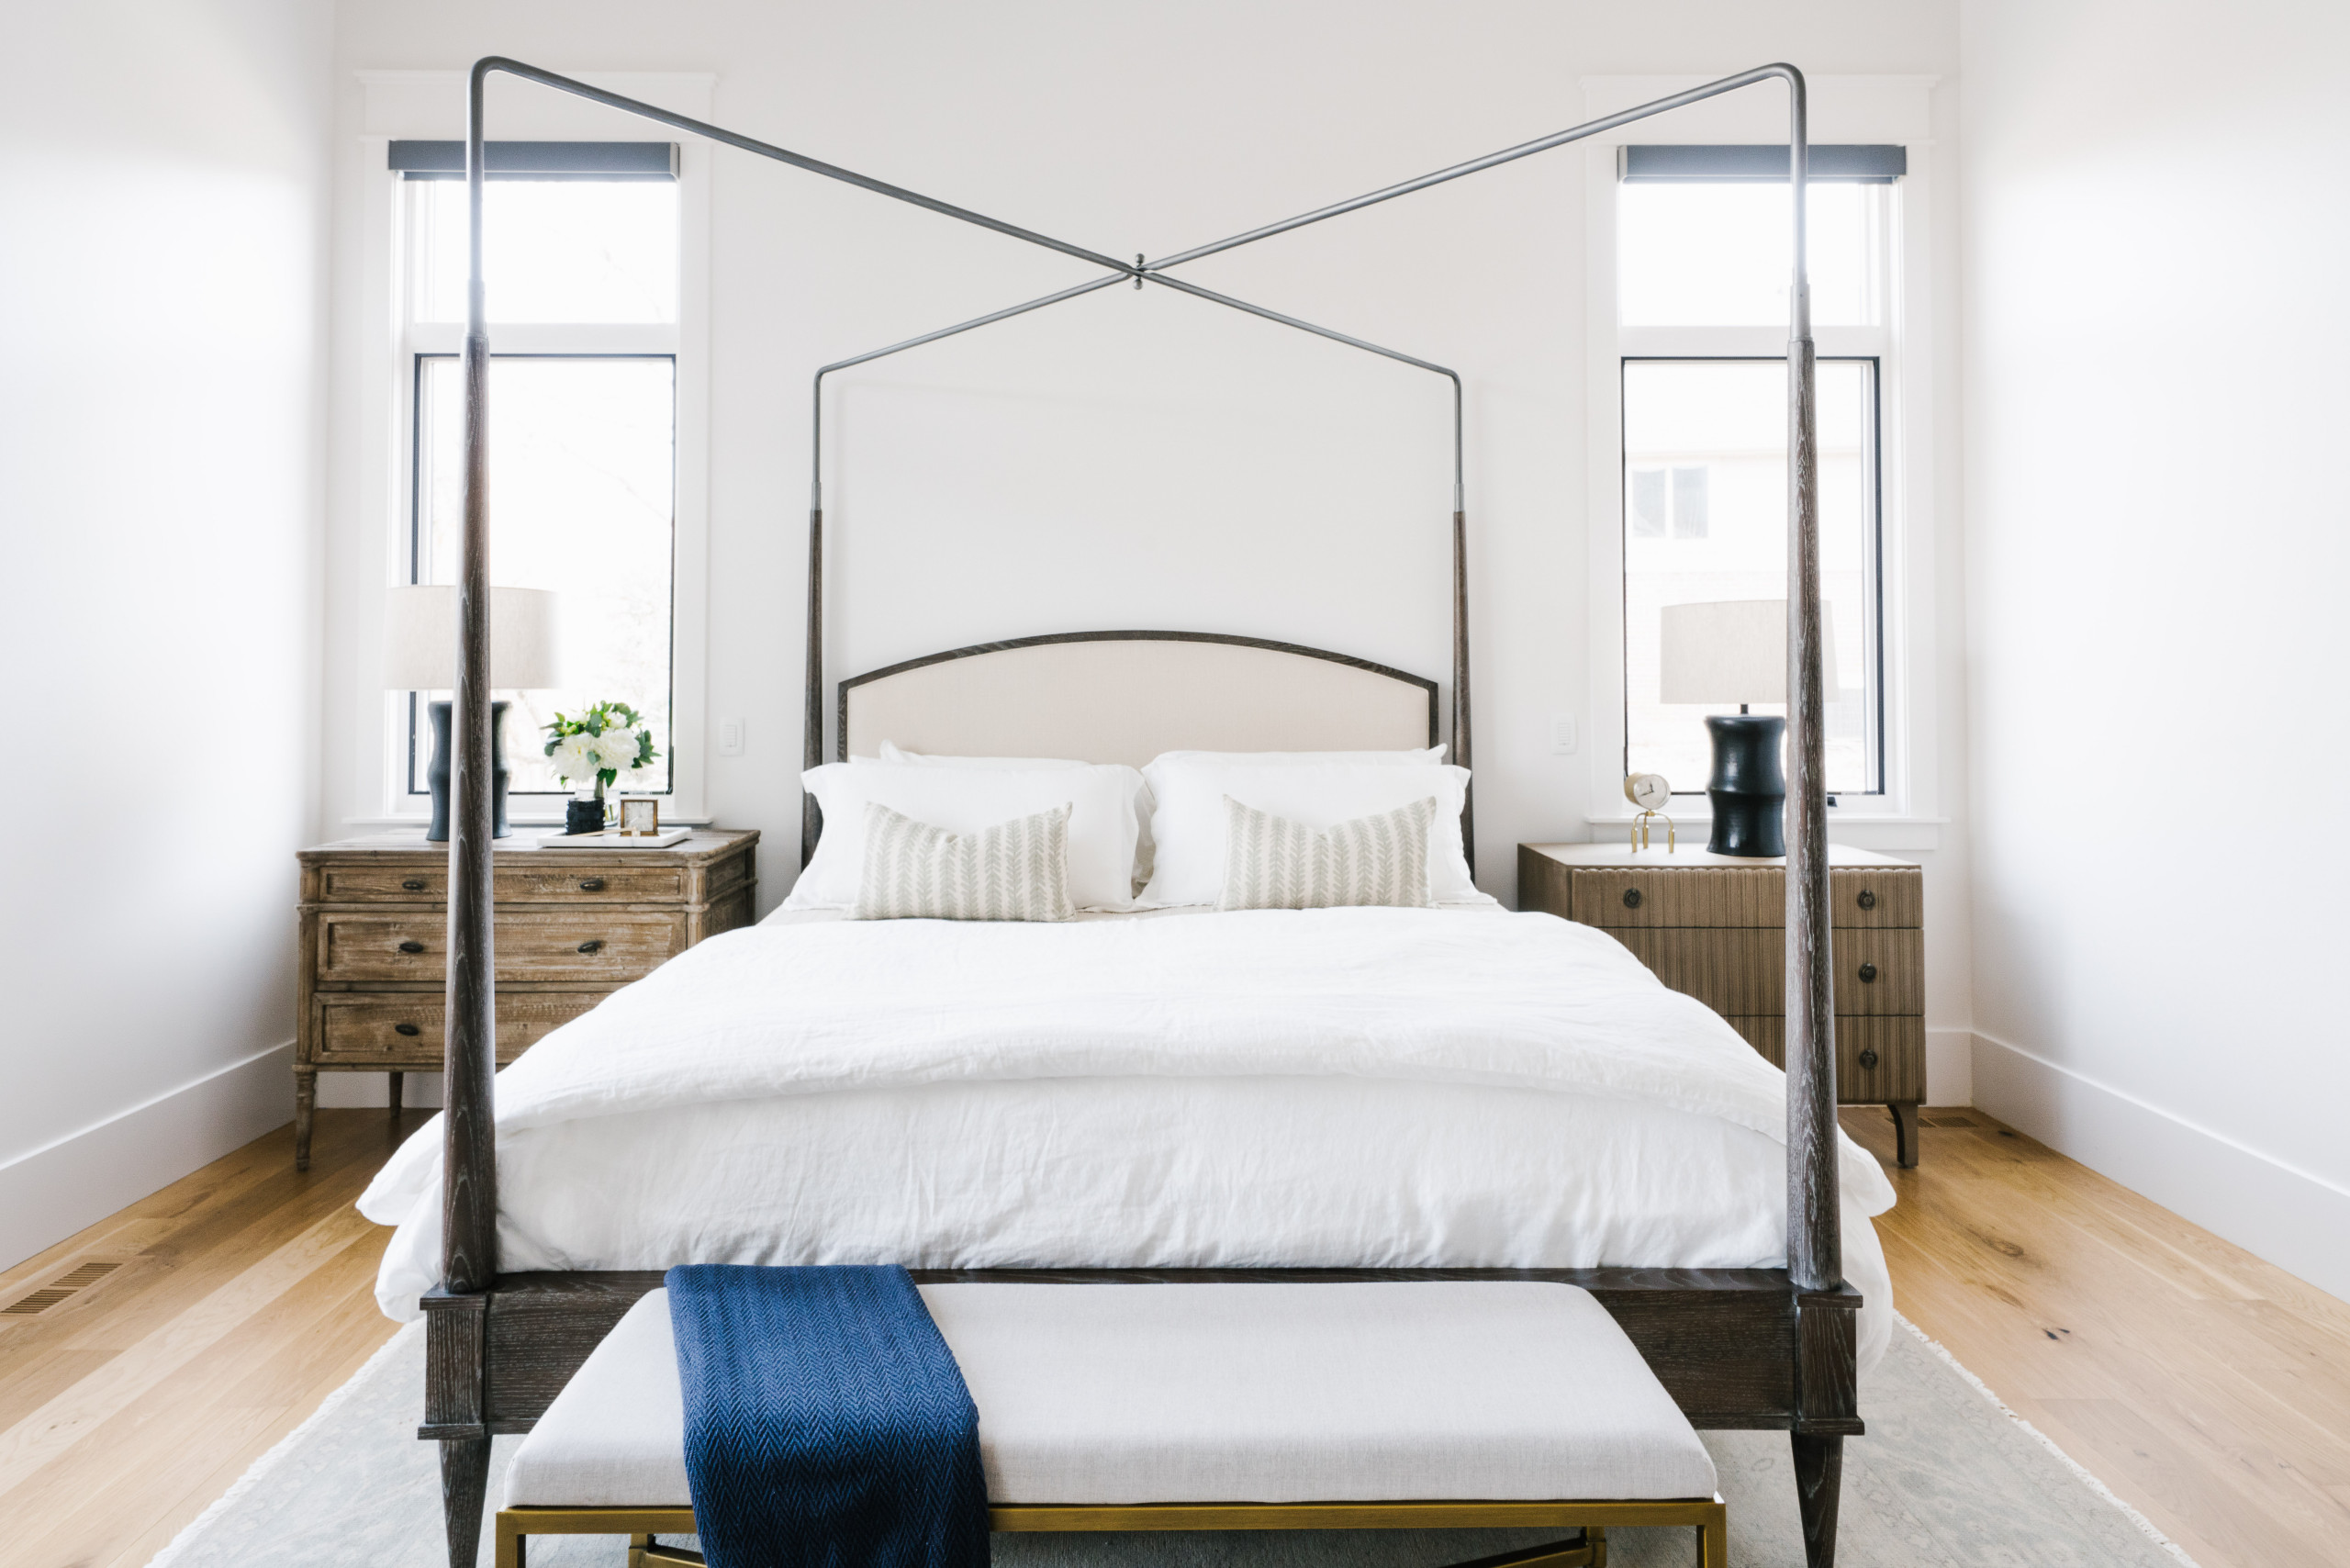 75 Beautiful Traditional Bedroom Pictures & Ideas - November, 2020 | Houzz